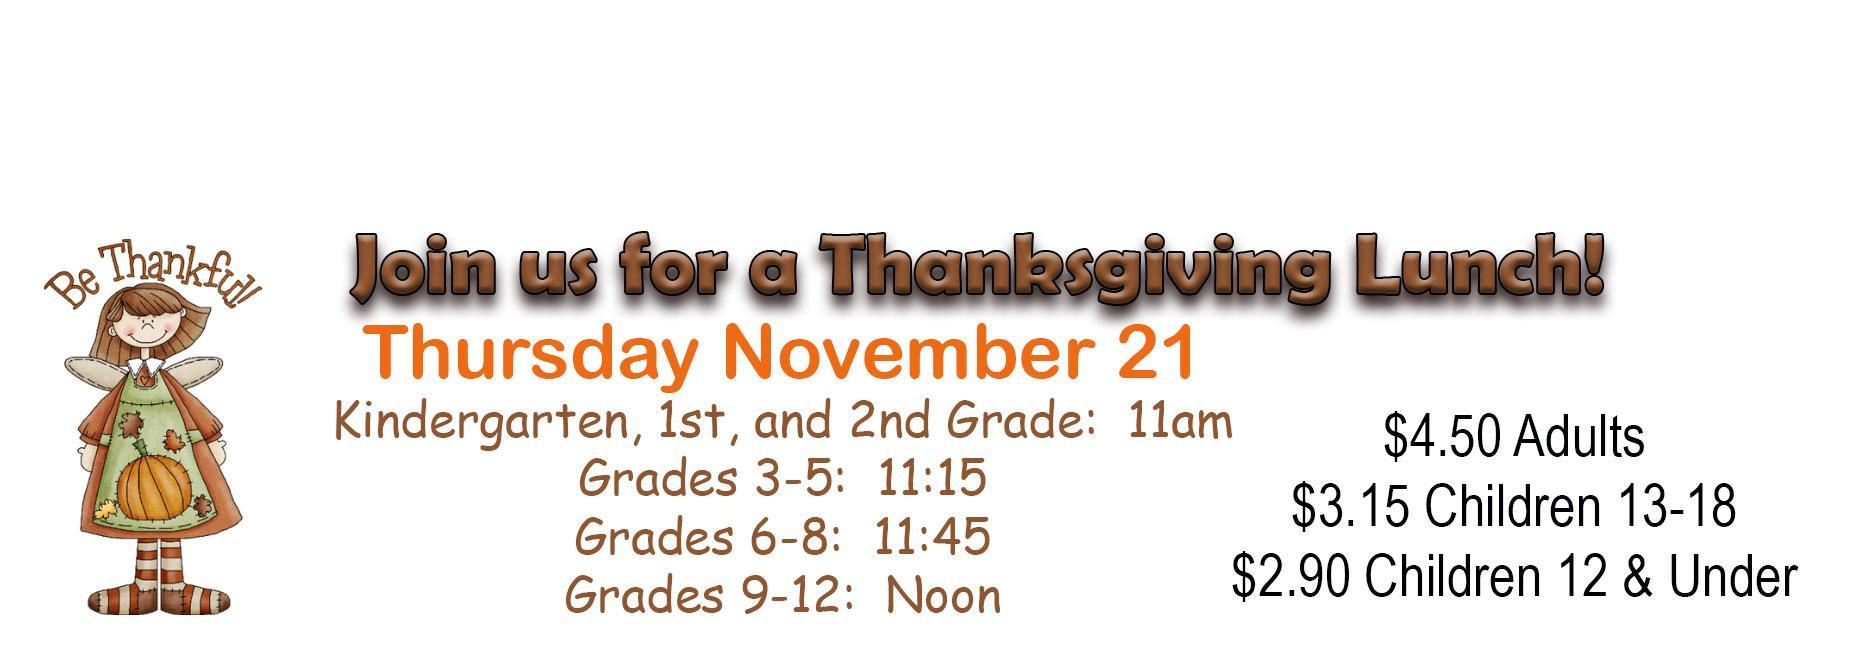 Join us for a Thanksgiving Lunch on Nov 21